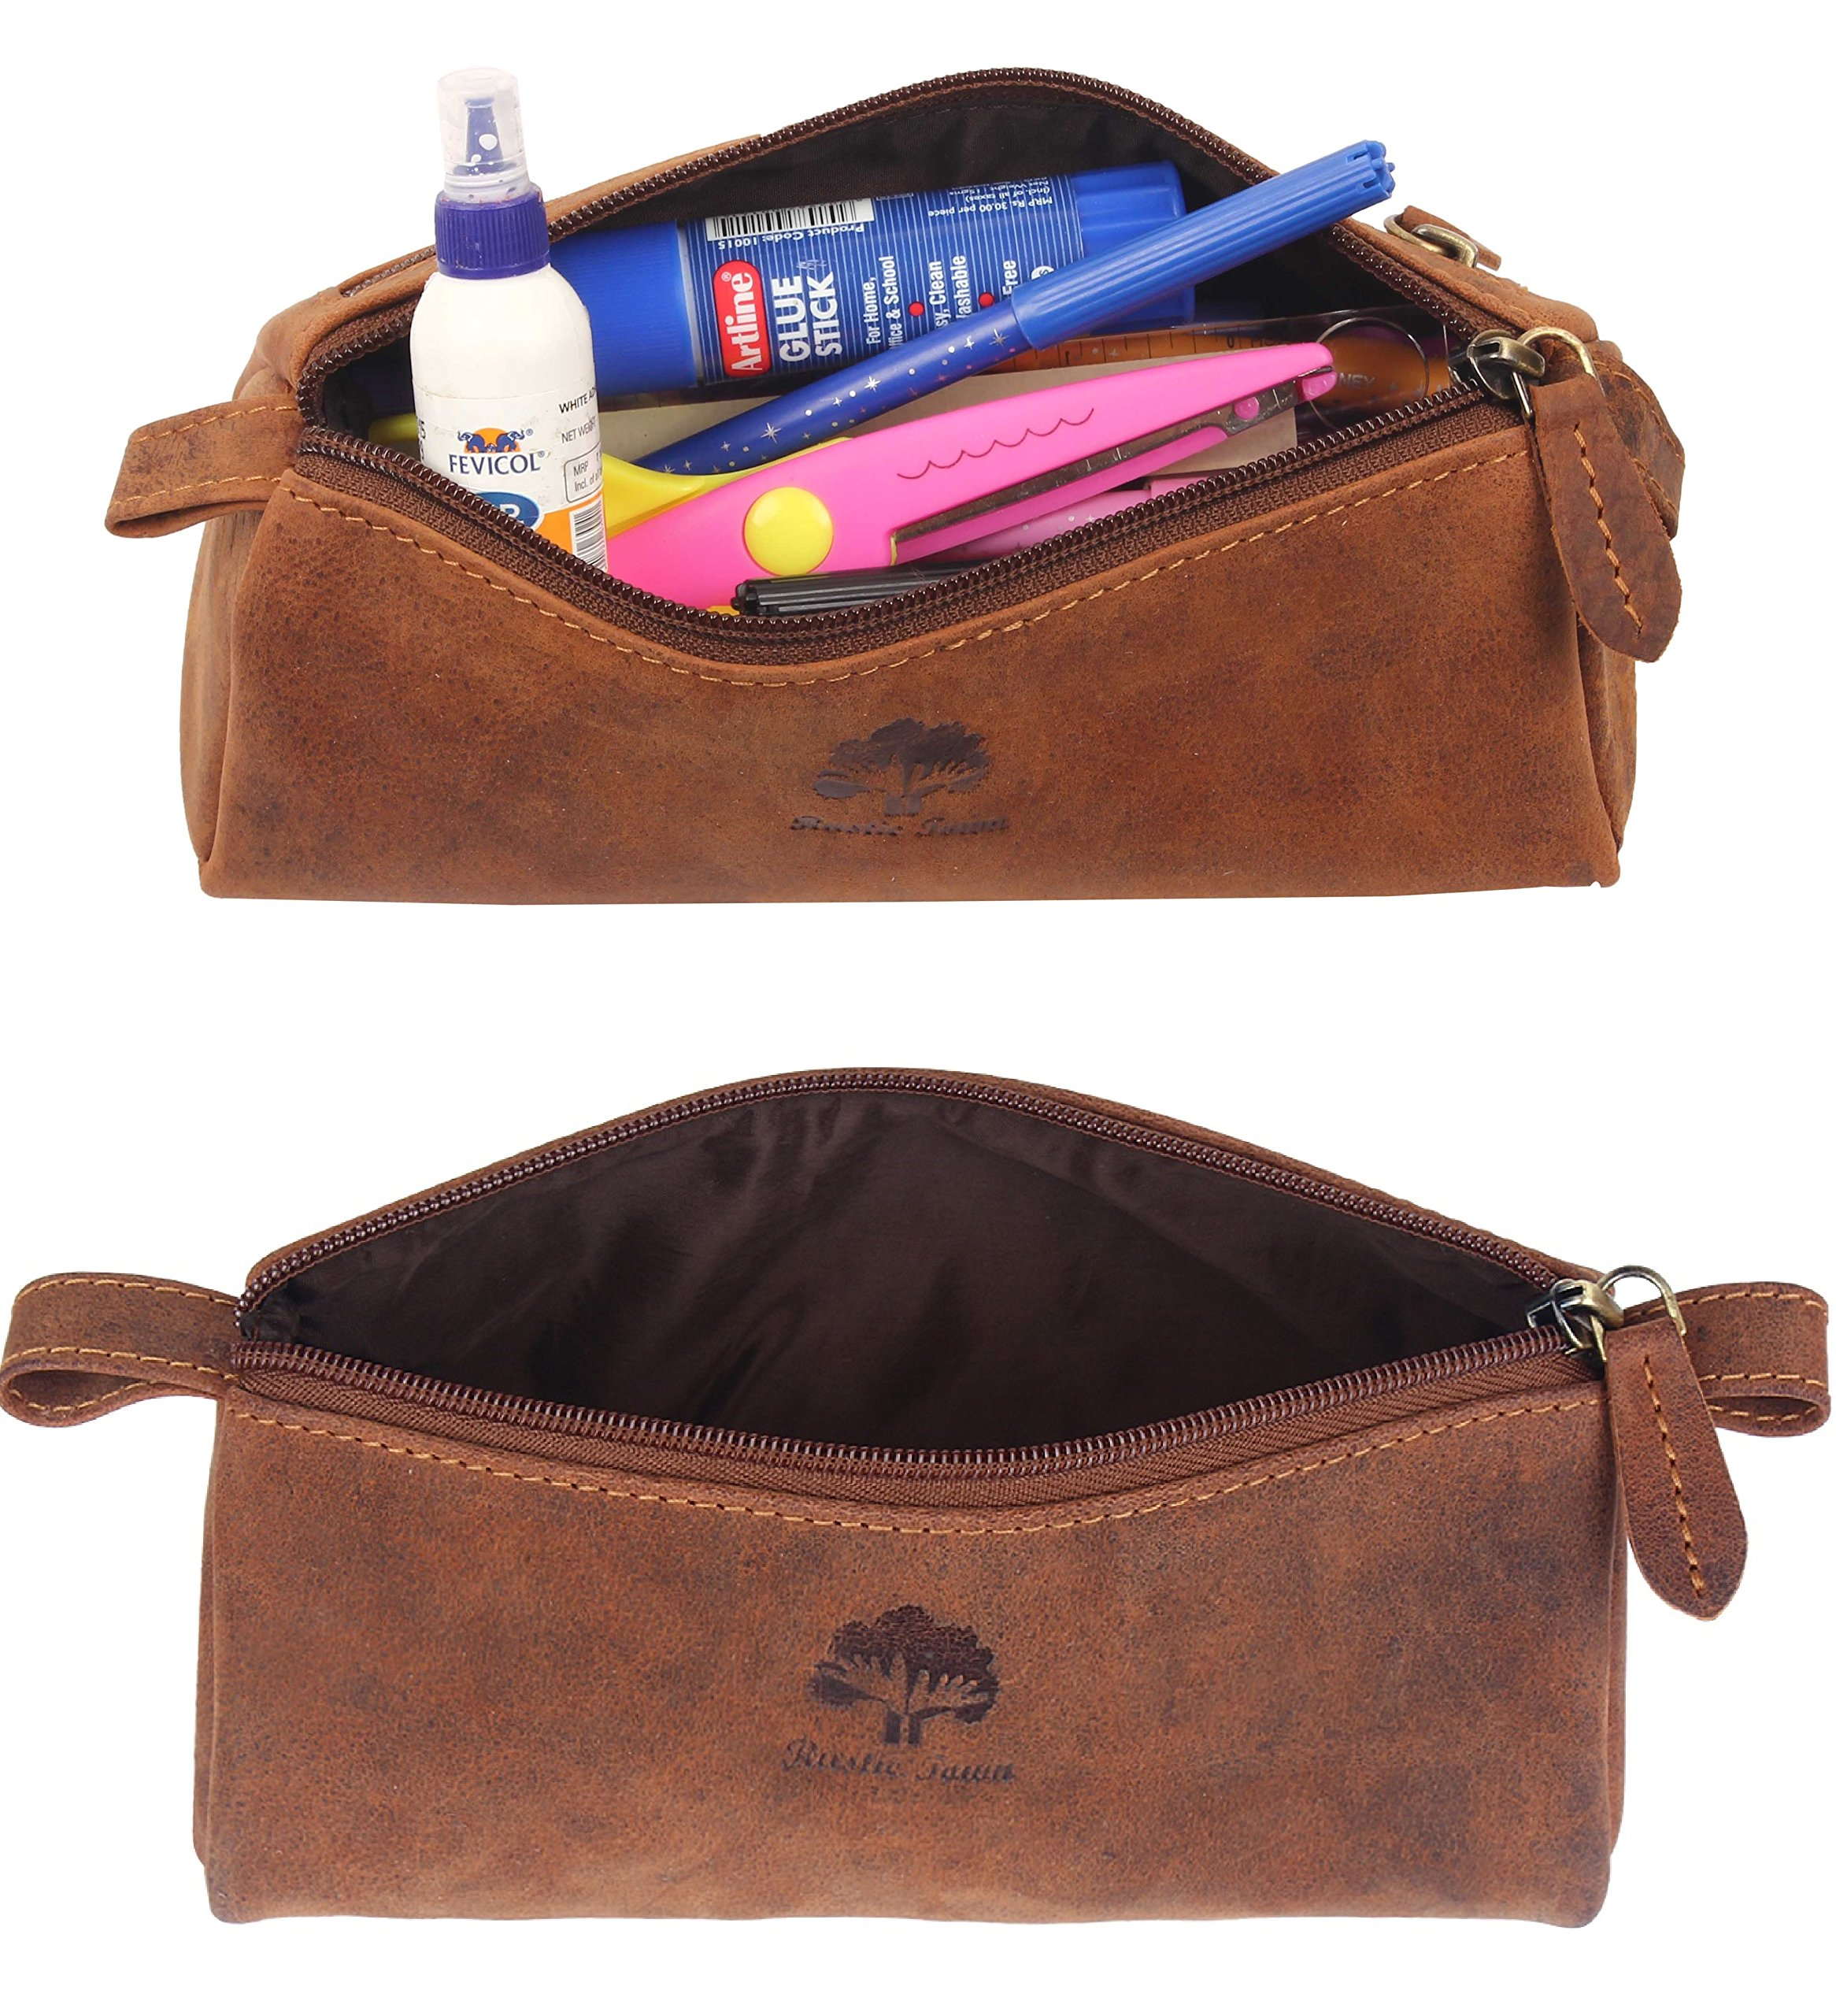 Leather Pencil Case - Zippered Pen Pouch for School, Work & Office by Rustic Town by RusticTown (Image #5)